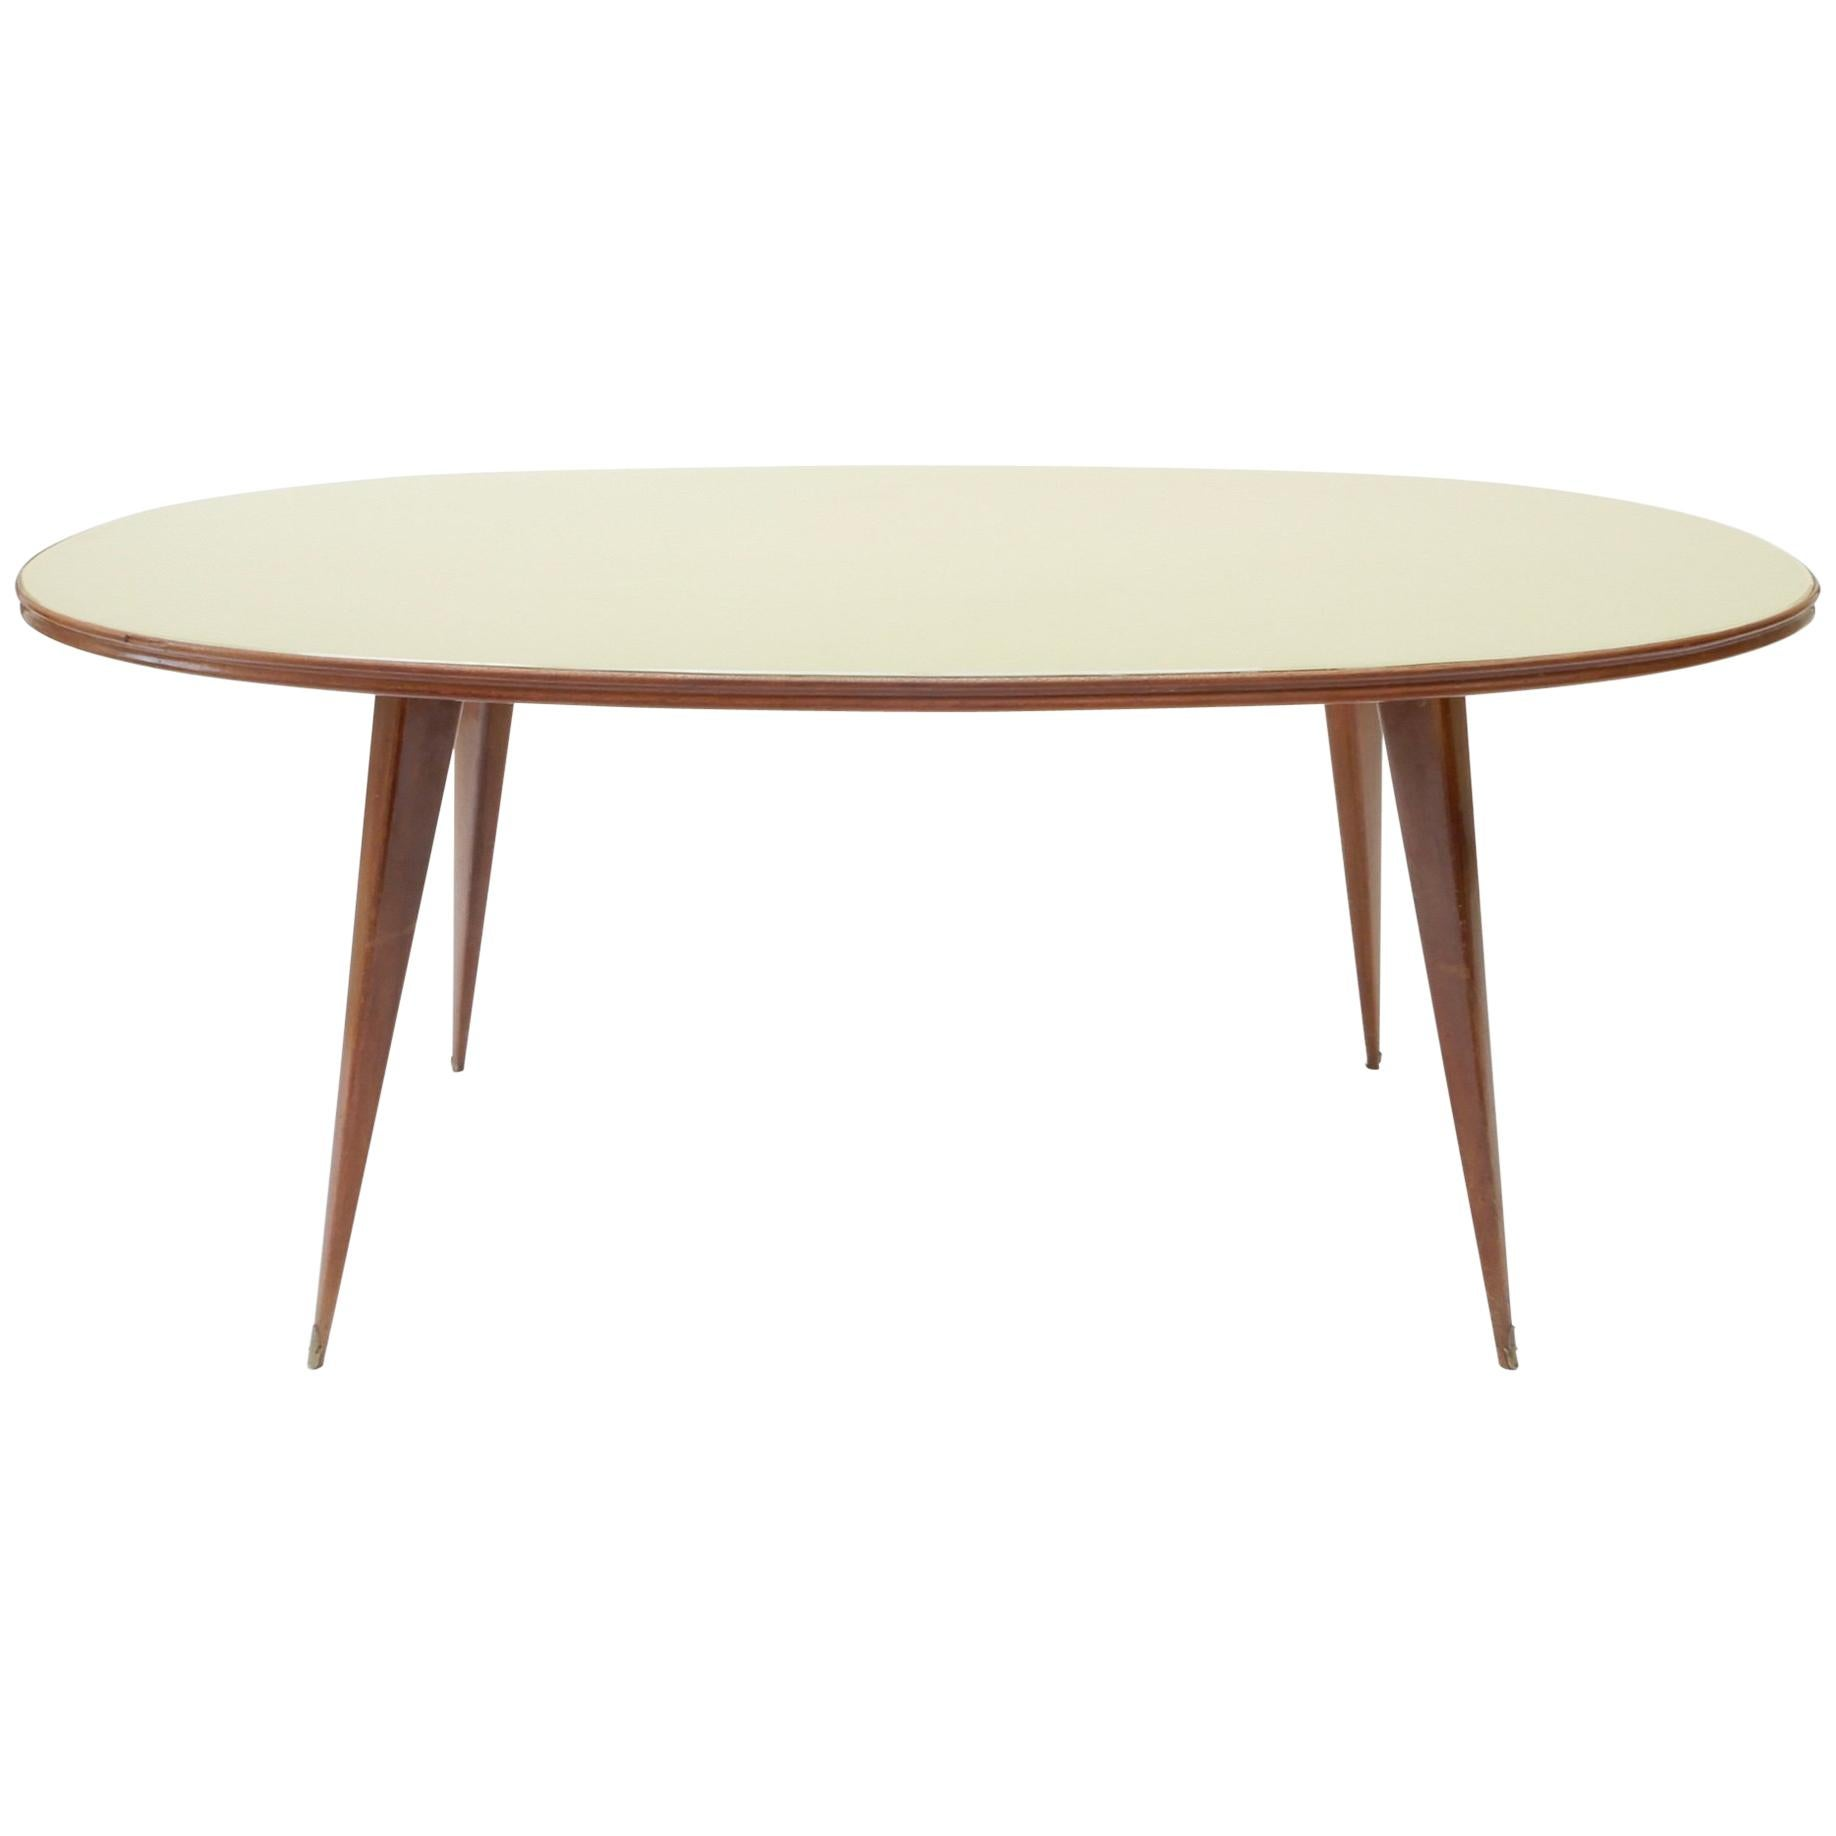 Italian Console or Dining Table with Opaque Glass Top, 1960s